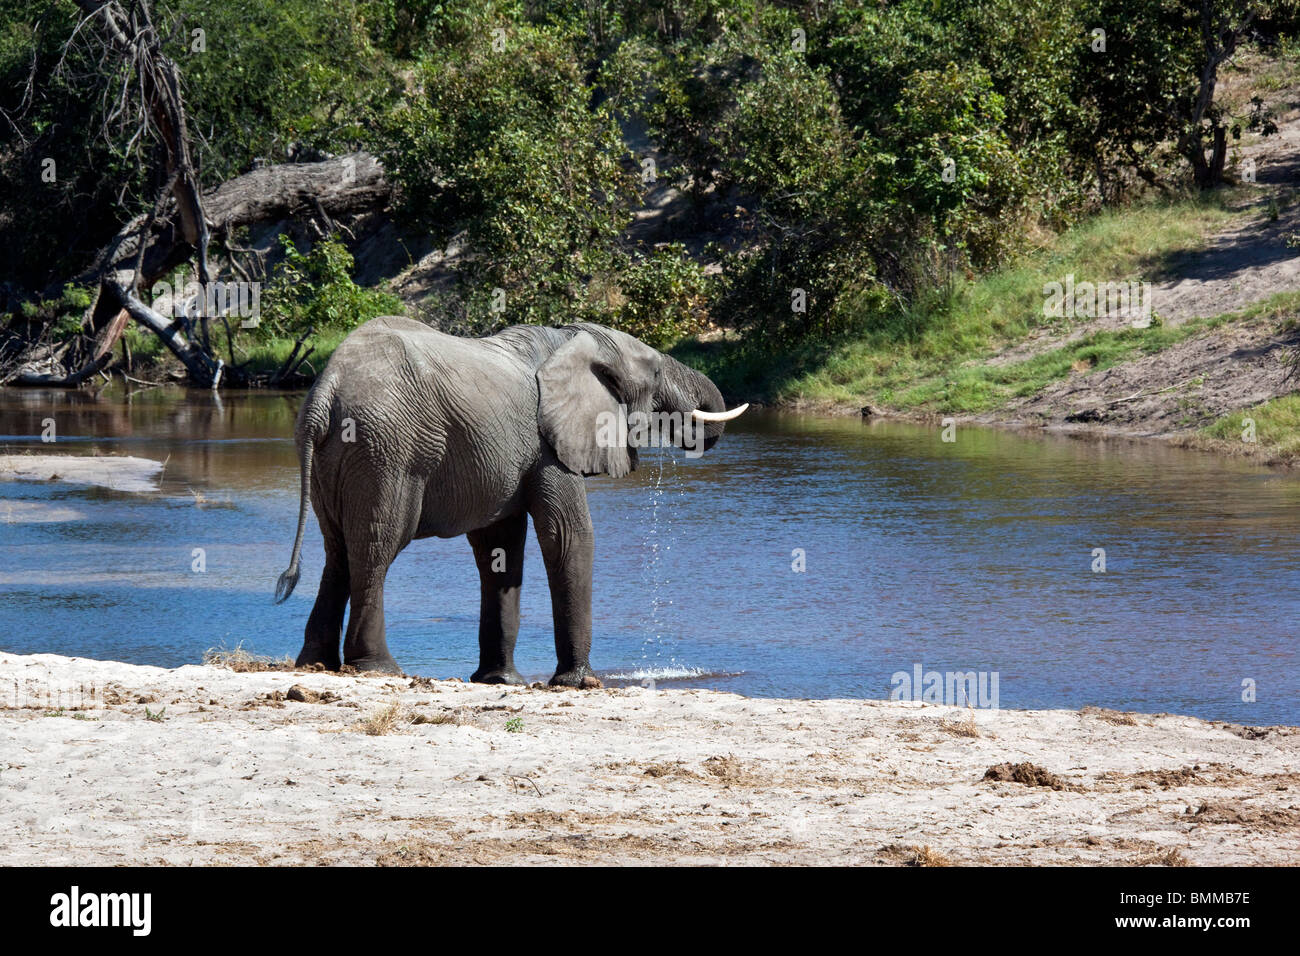 An African Elephant (Loxodonta africana) drinking from the newly flooded Savuti Channel in Northern Botswana. - Stock Image